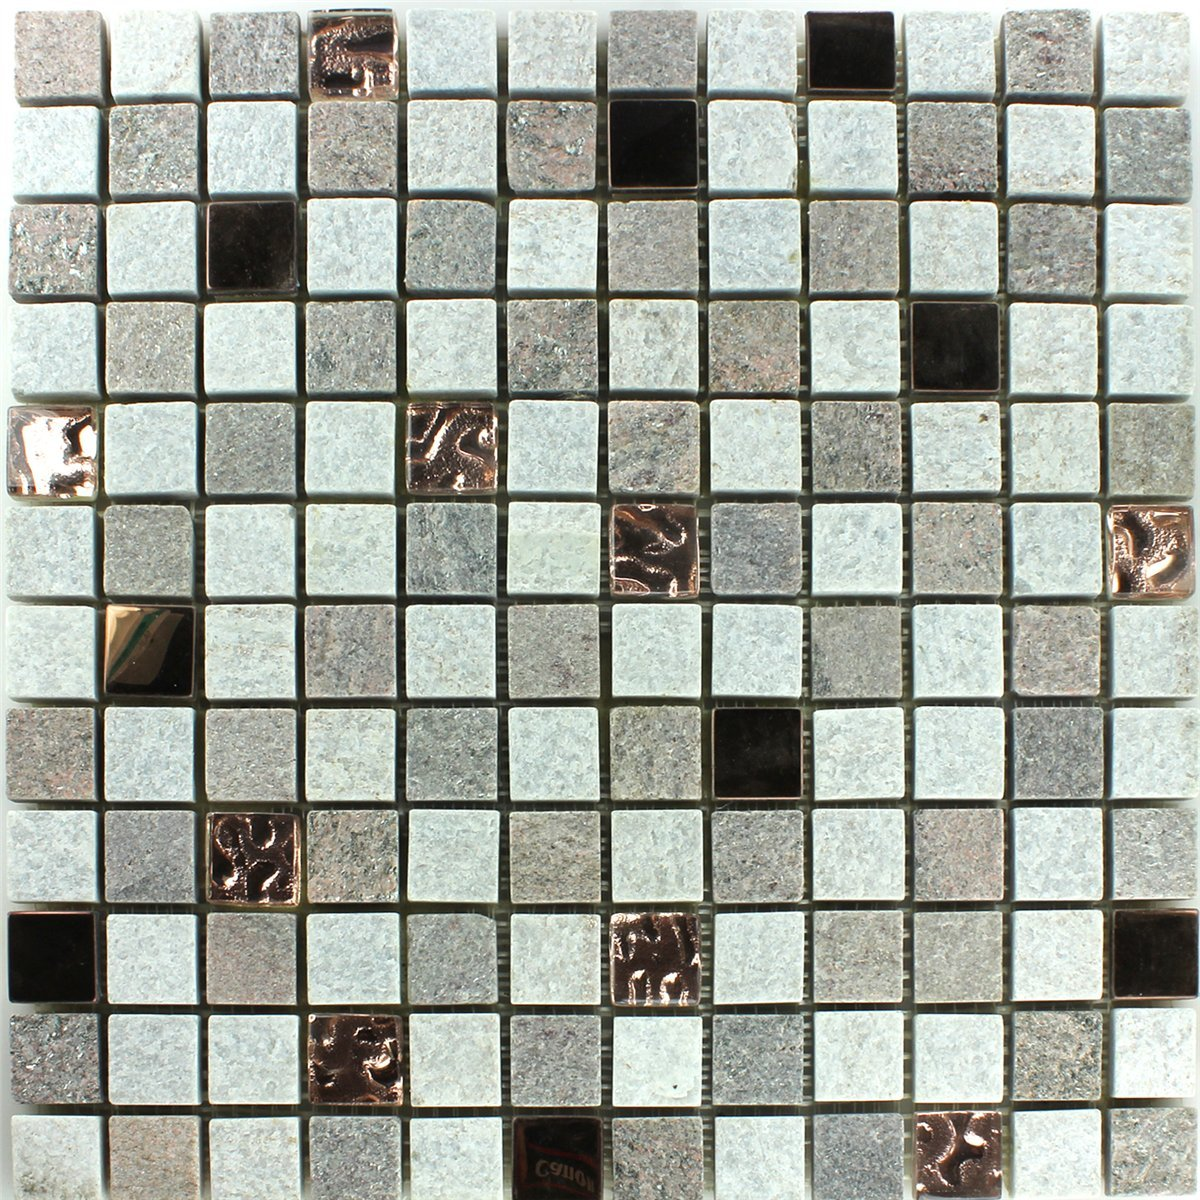 Glass metal natural stone mosaic tiles grey red mt51272 mosaic tiles glass metal natural stone tiles grey red dailygadgetfo Gallery